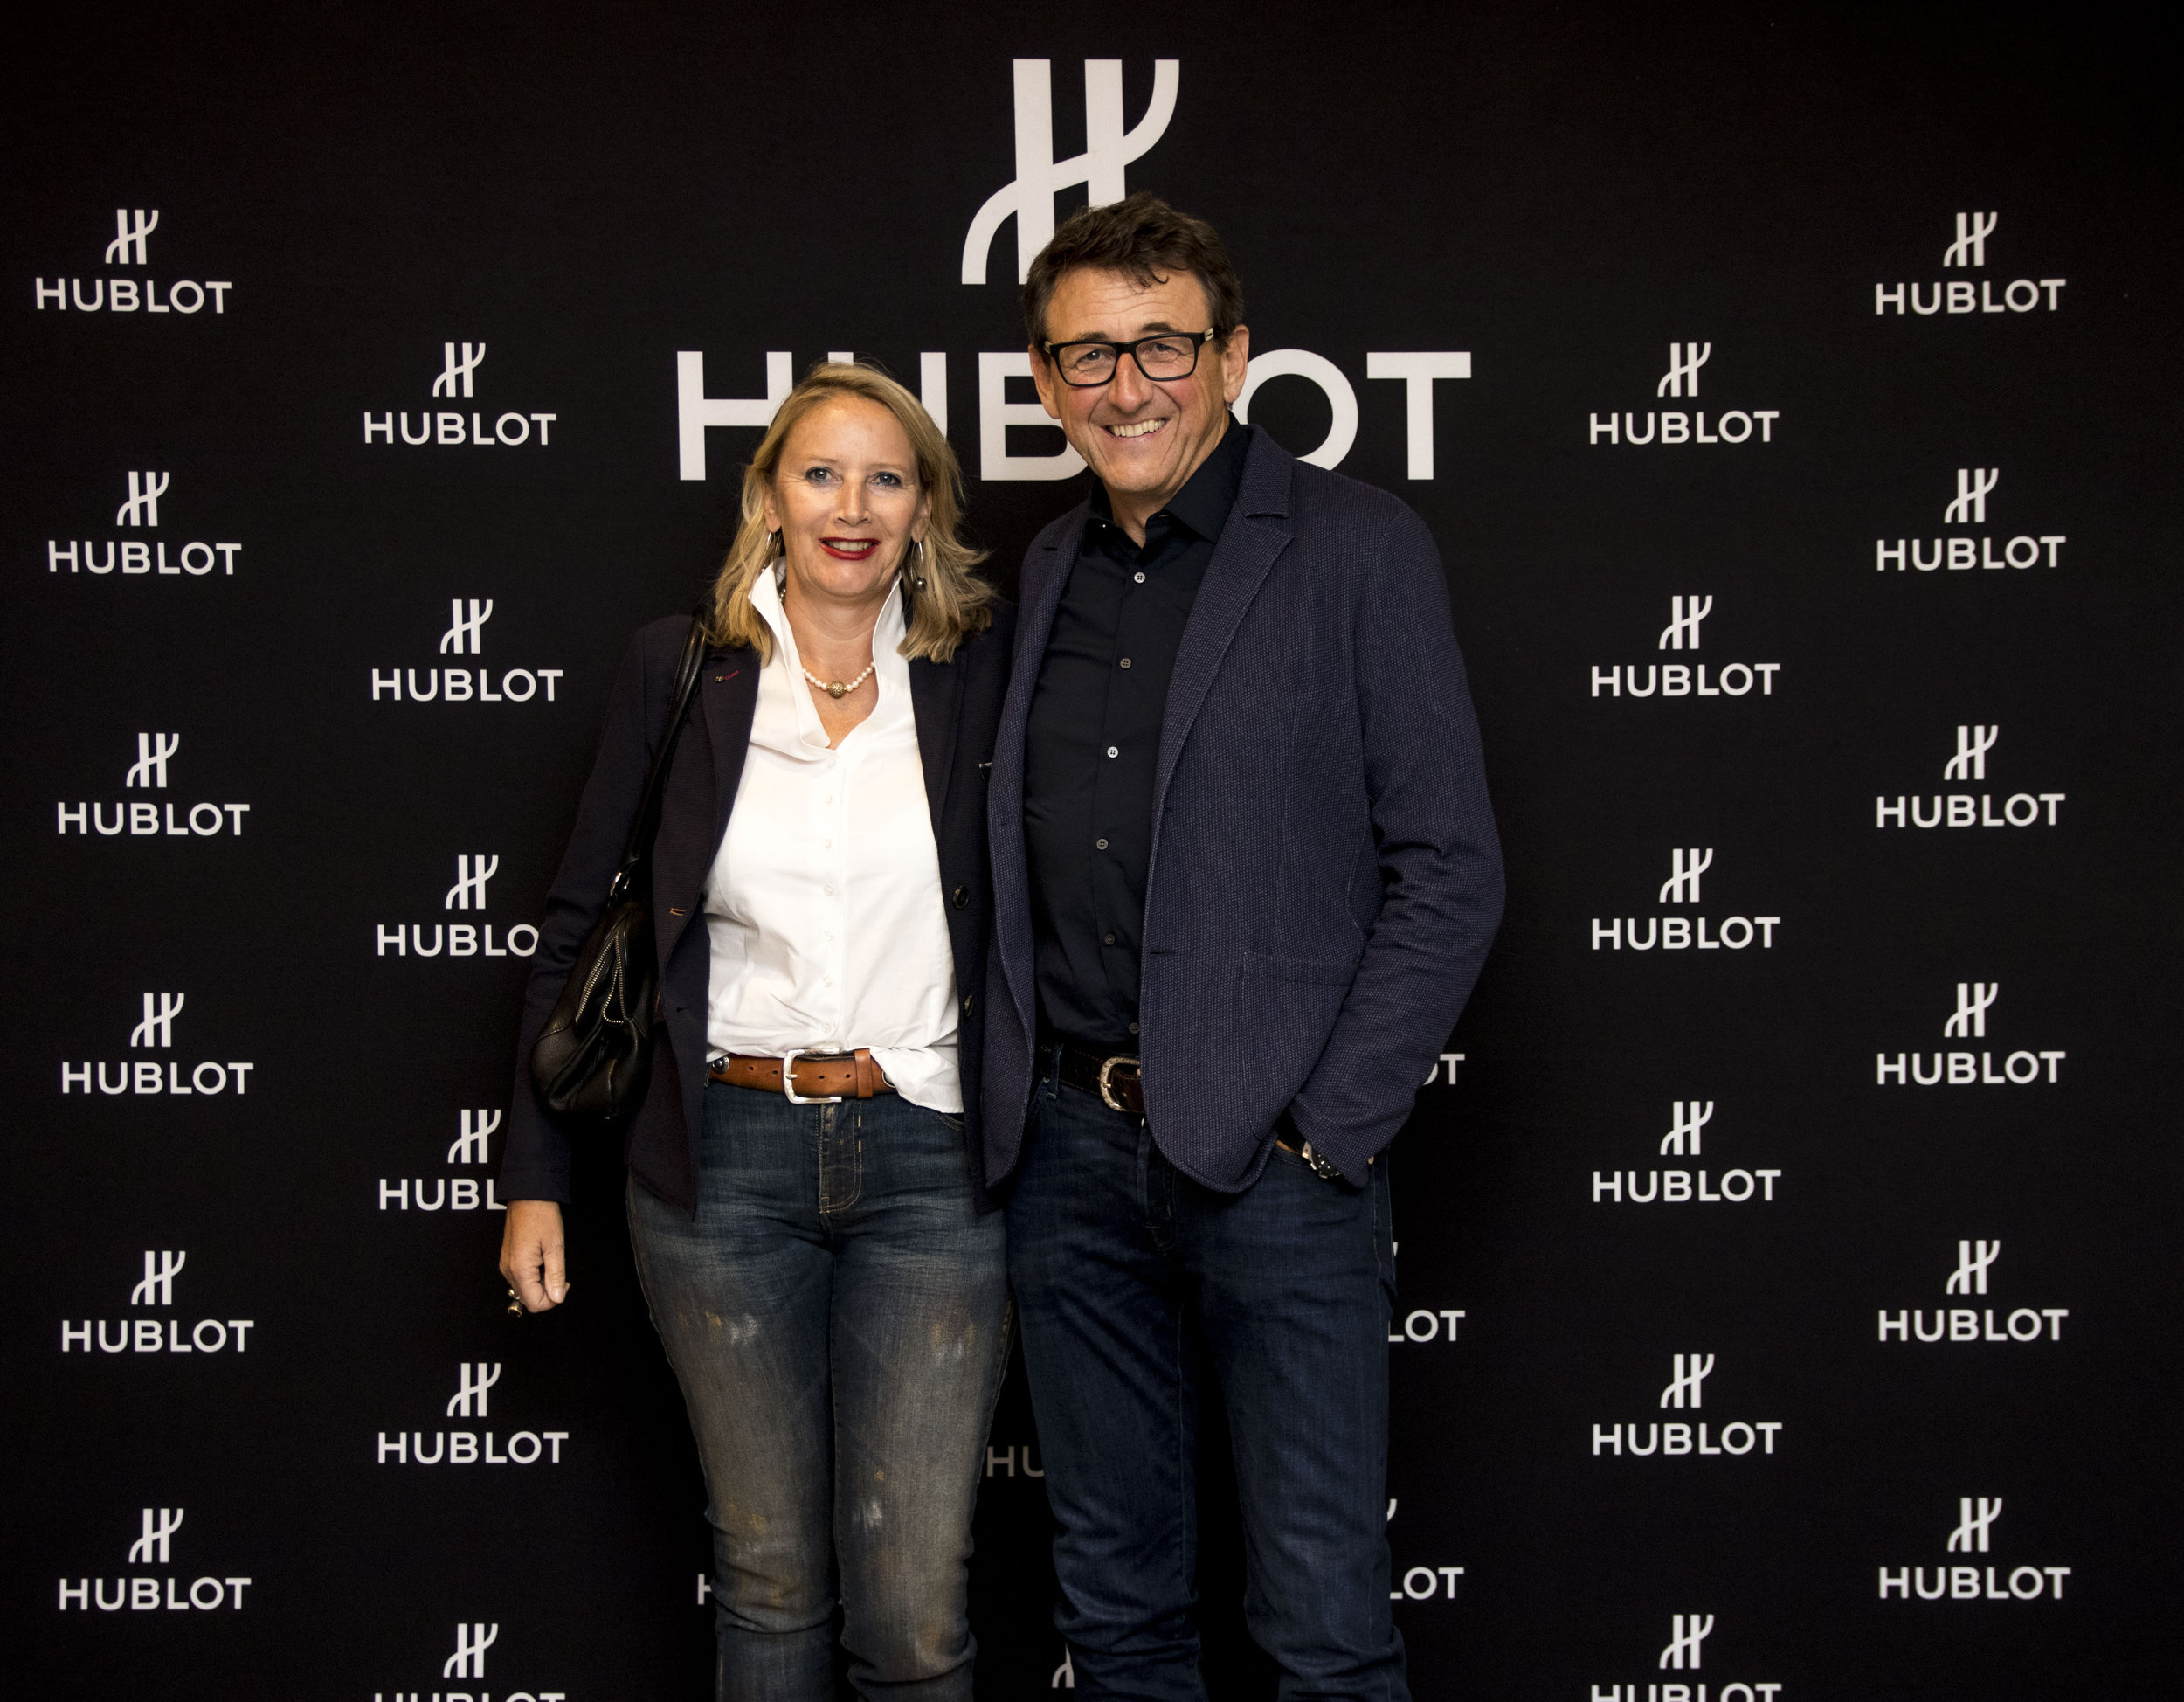 luxurygroupswitzerland_marcferrero_hublot_web026.jpg